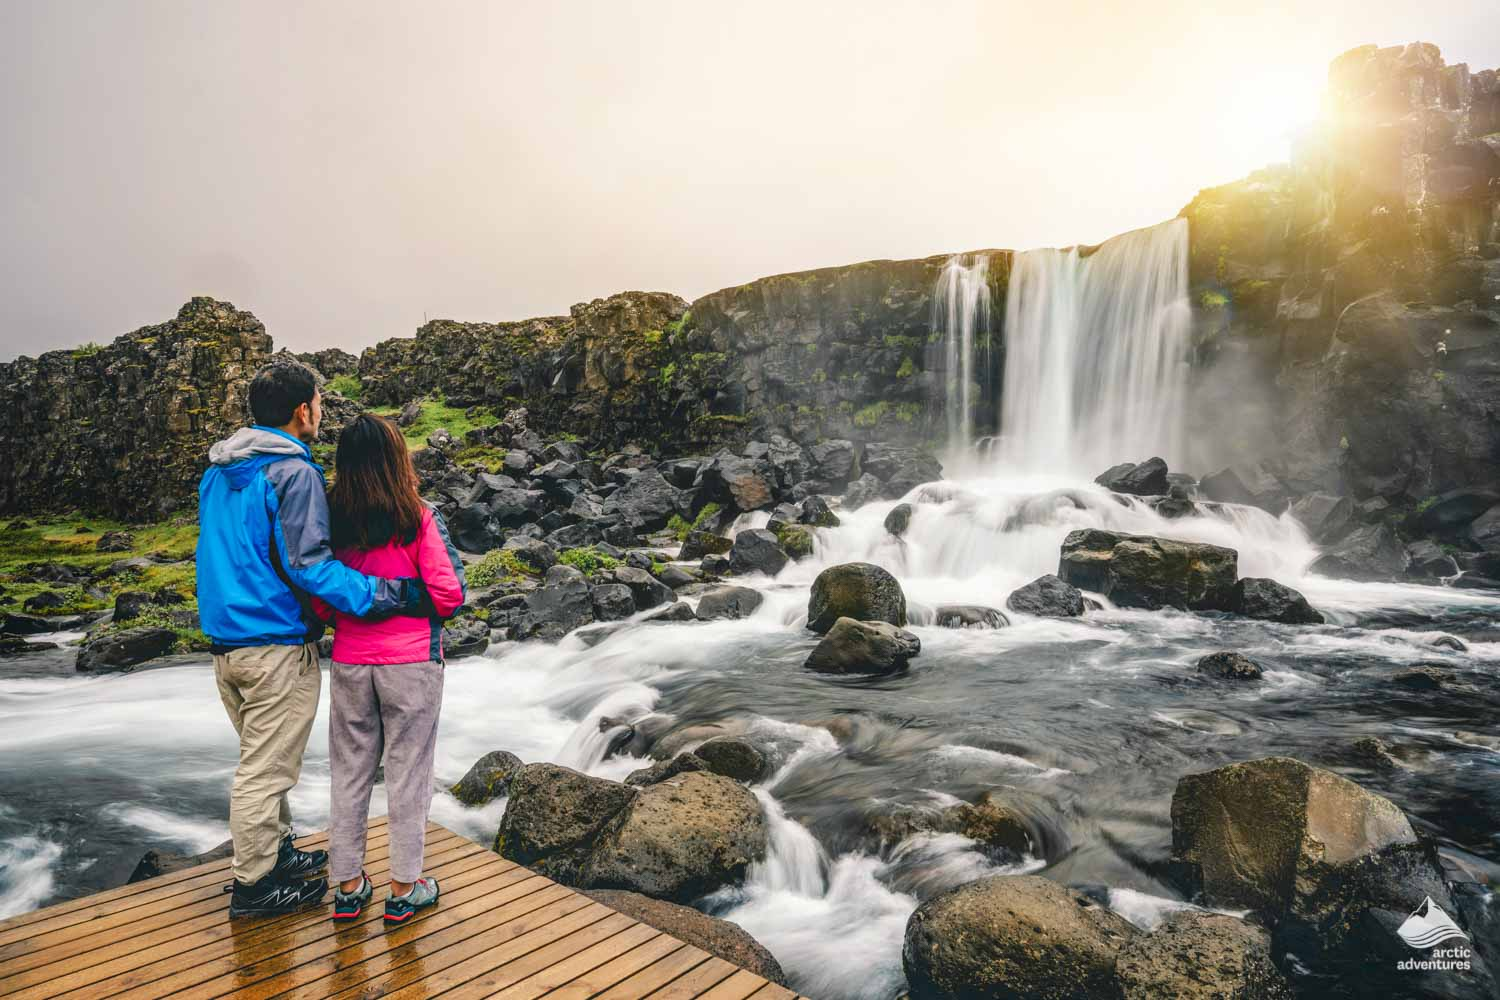 Oxararfoss Waterfall's beautiful scenery